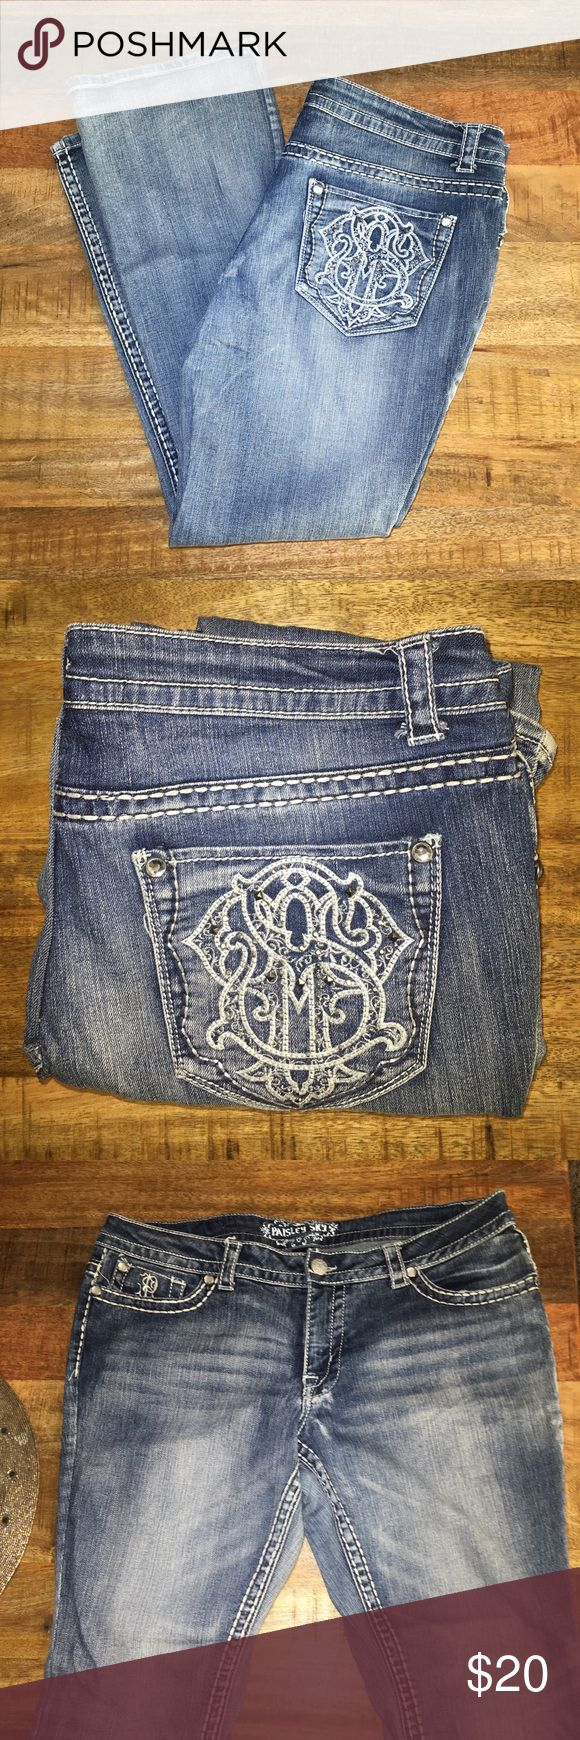 Jeans Very good condition - only worn a few time  99% cotton 1% spandex - Size 14 🗣Willing to consider offers🗣 Feel free to ask any questions! Check out the bundle deal! Paisley Sky Jeans Boot Cut